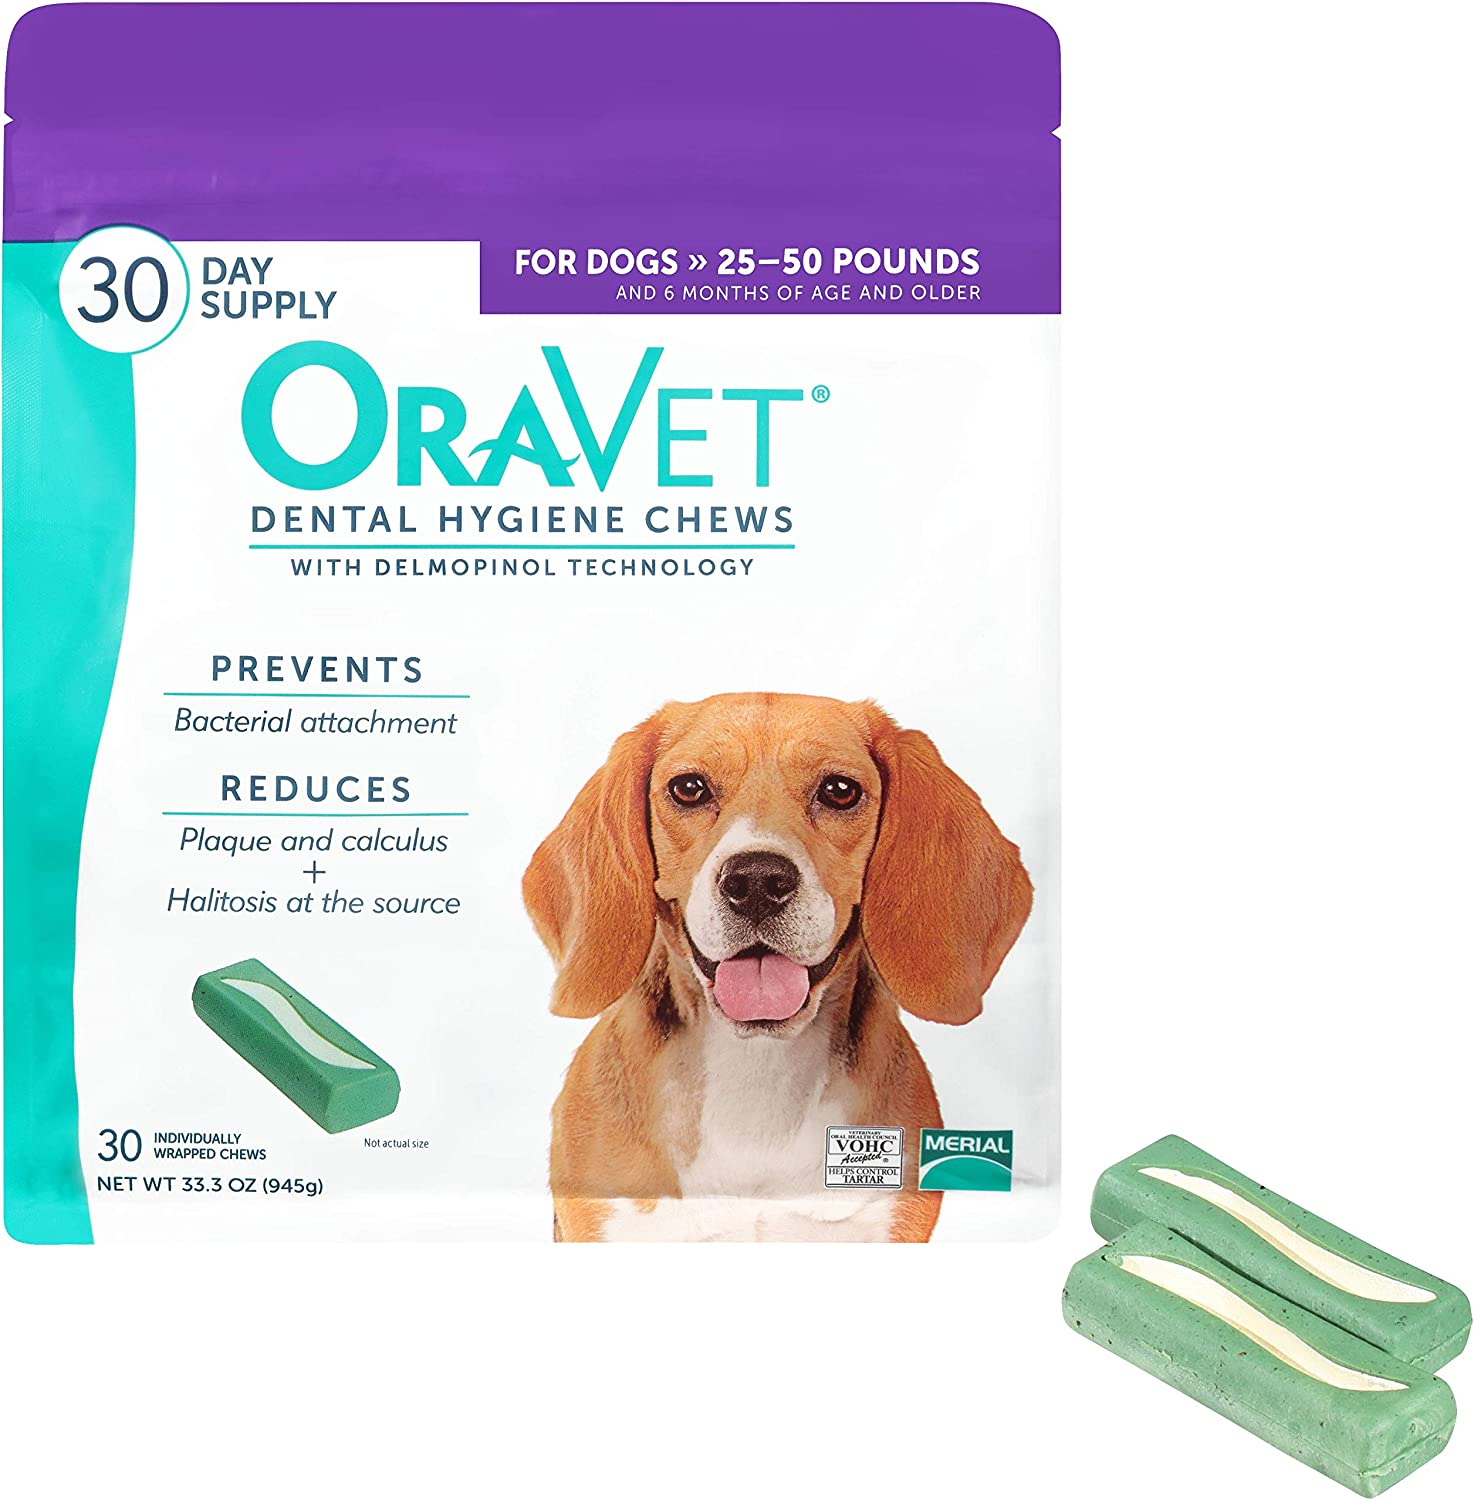 Oravet Dental Hygiene Chews for Medium Dogs 25 – 50 lbs